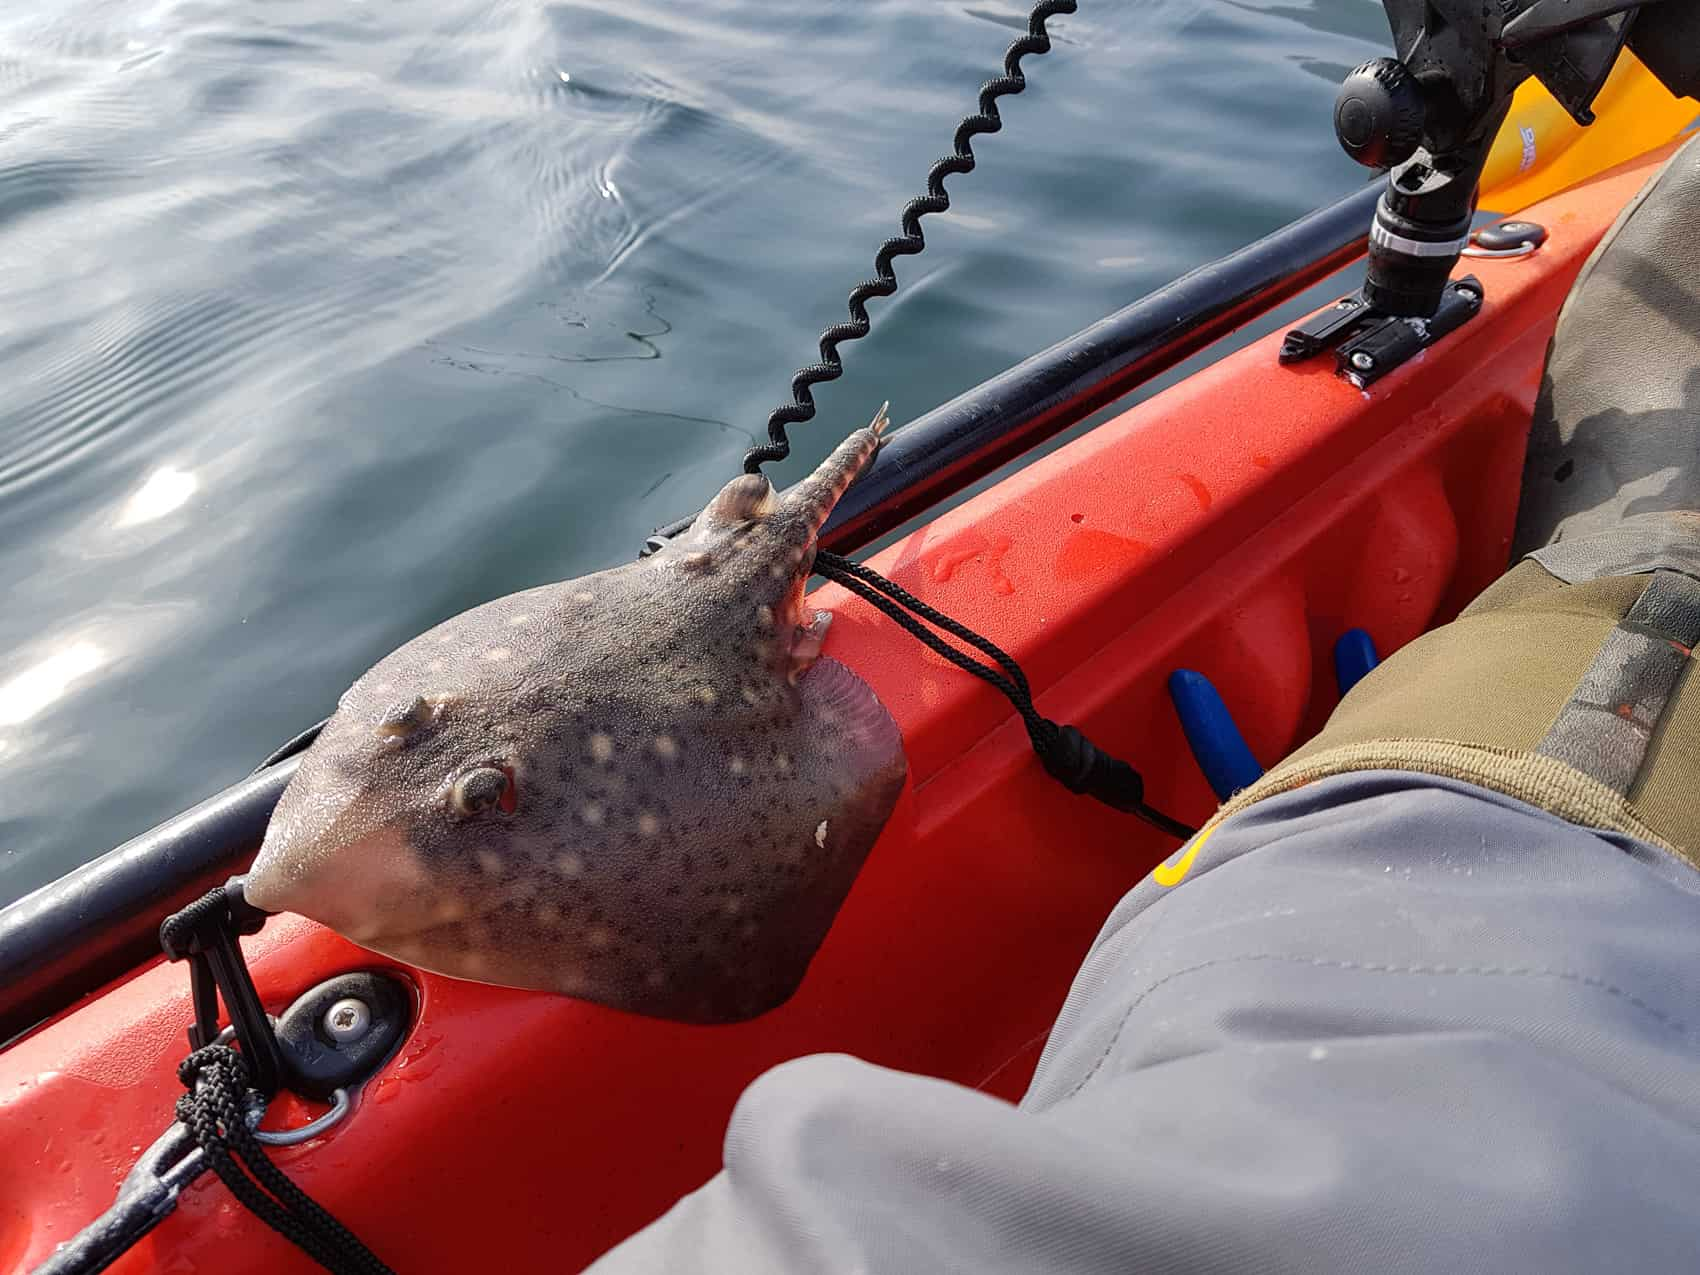 First fish from the kayak - a tiddler thornback ray